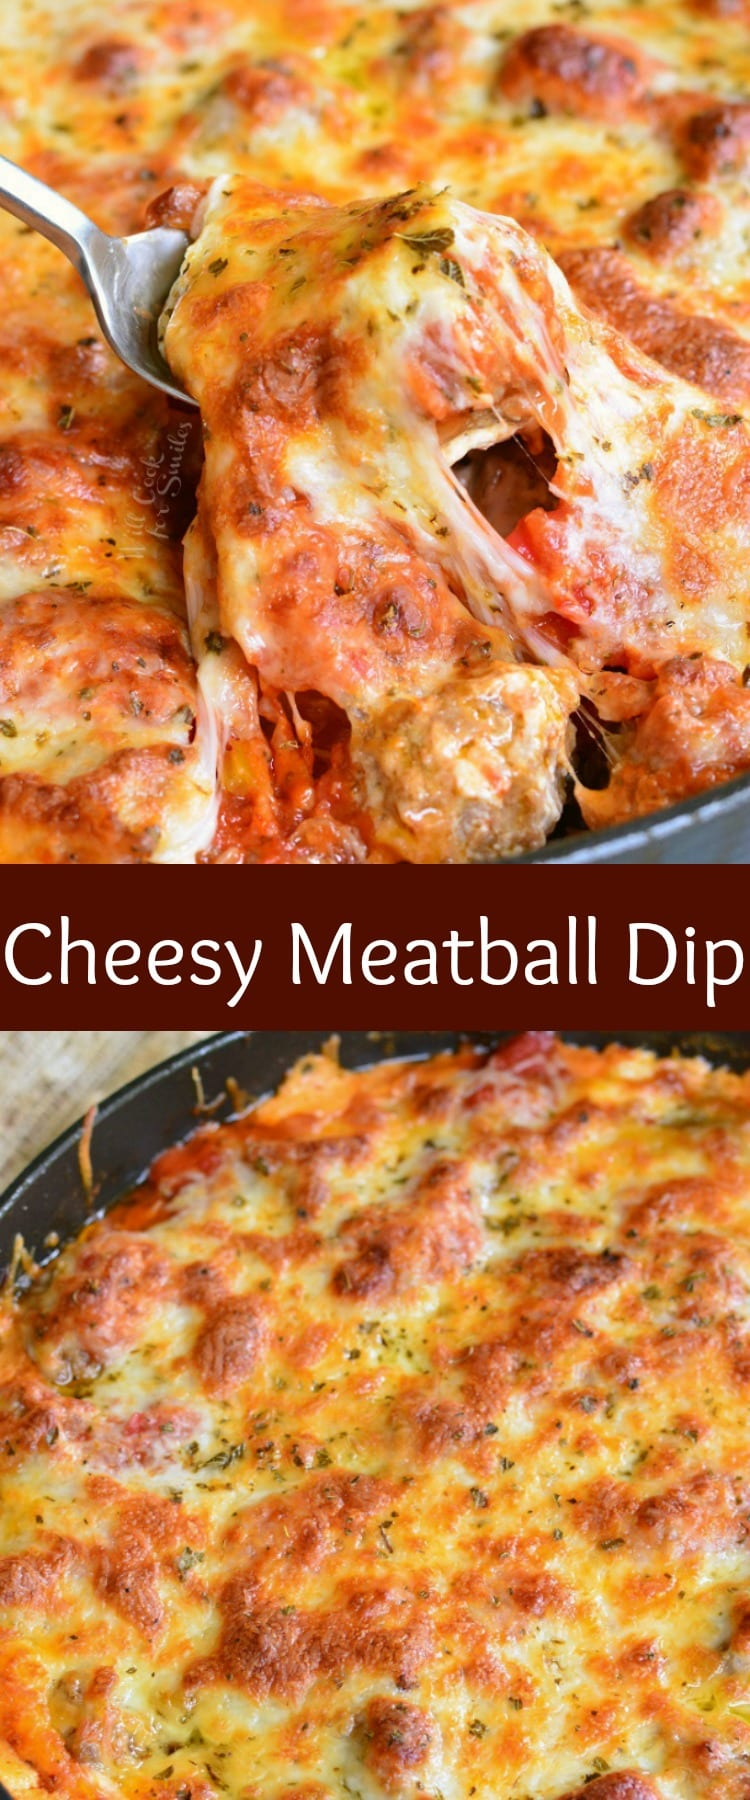 Cheesy Meatball Dip. Amazing hot dip recipe made with homemade, bite-sized meatballs and layers of marinara sauce, cream cheese mixture, veggies, and more cheese. You will fall in love with each creamy, cheesy, meatball filled bite! #dip #hotdip #cheesedip #groundbeef #meatballs #appetizer